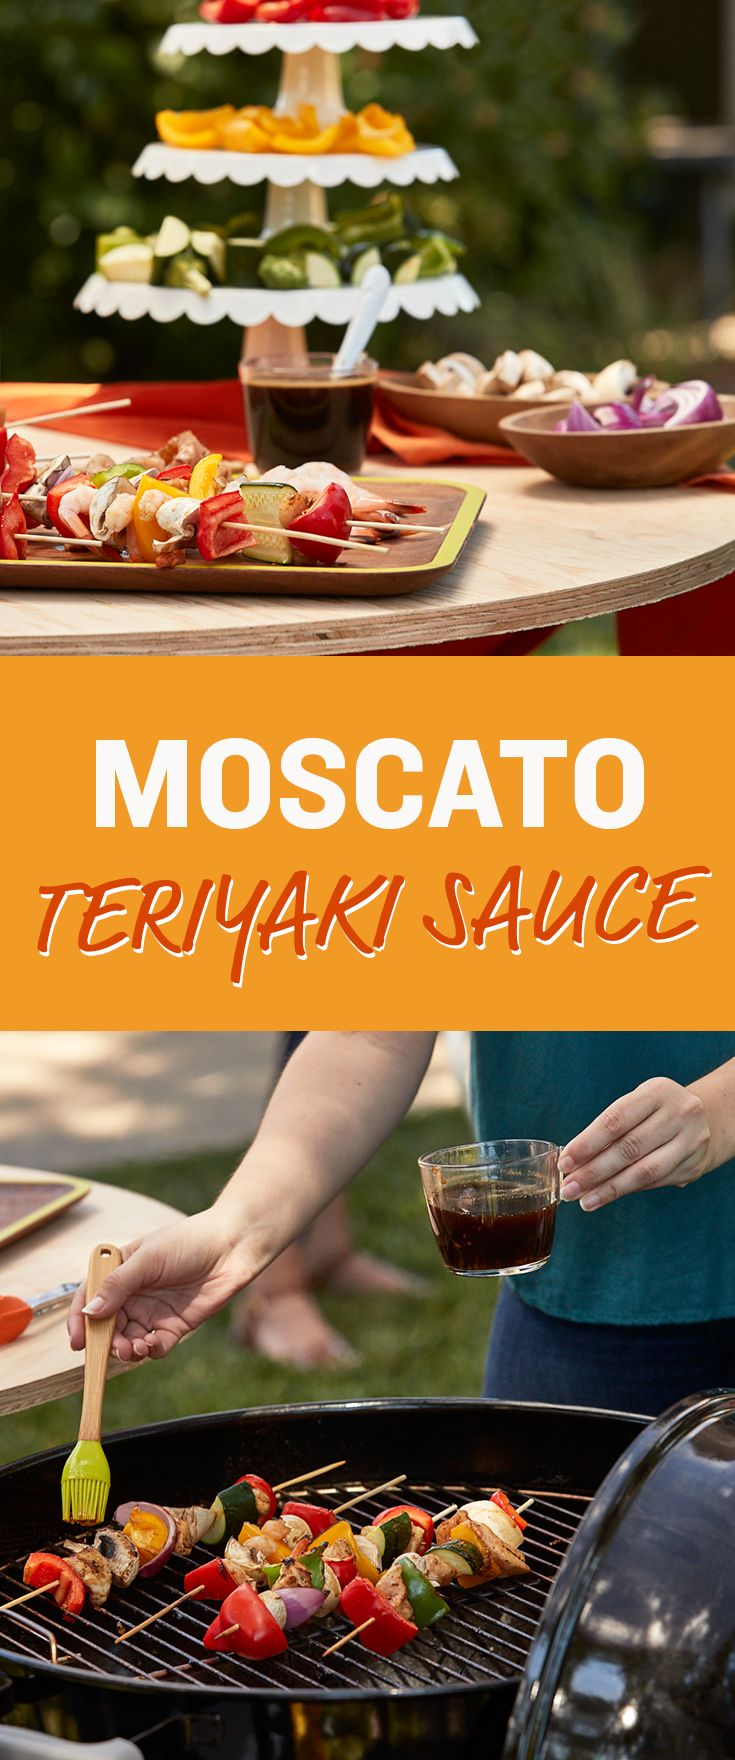 Wow your friends with this Moscato Teriyaki Sauce!